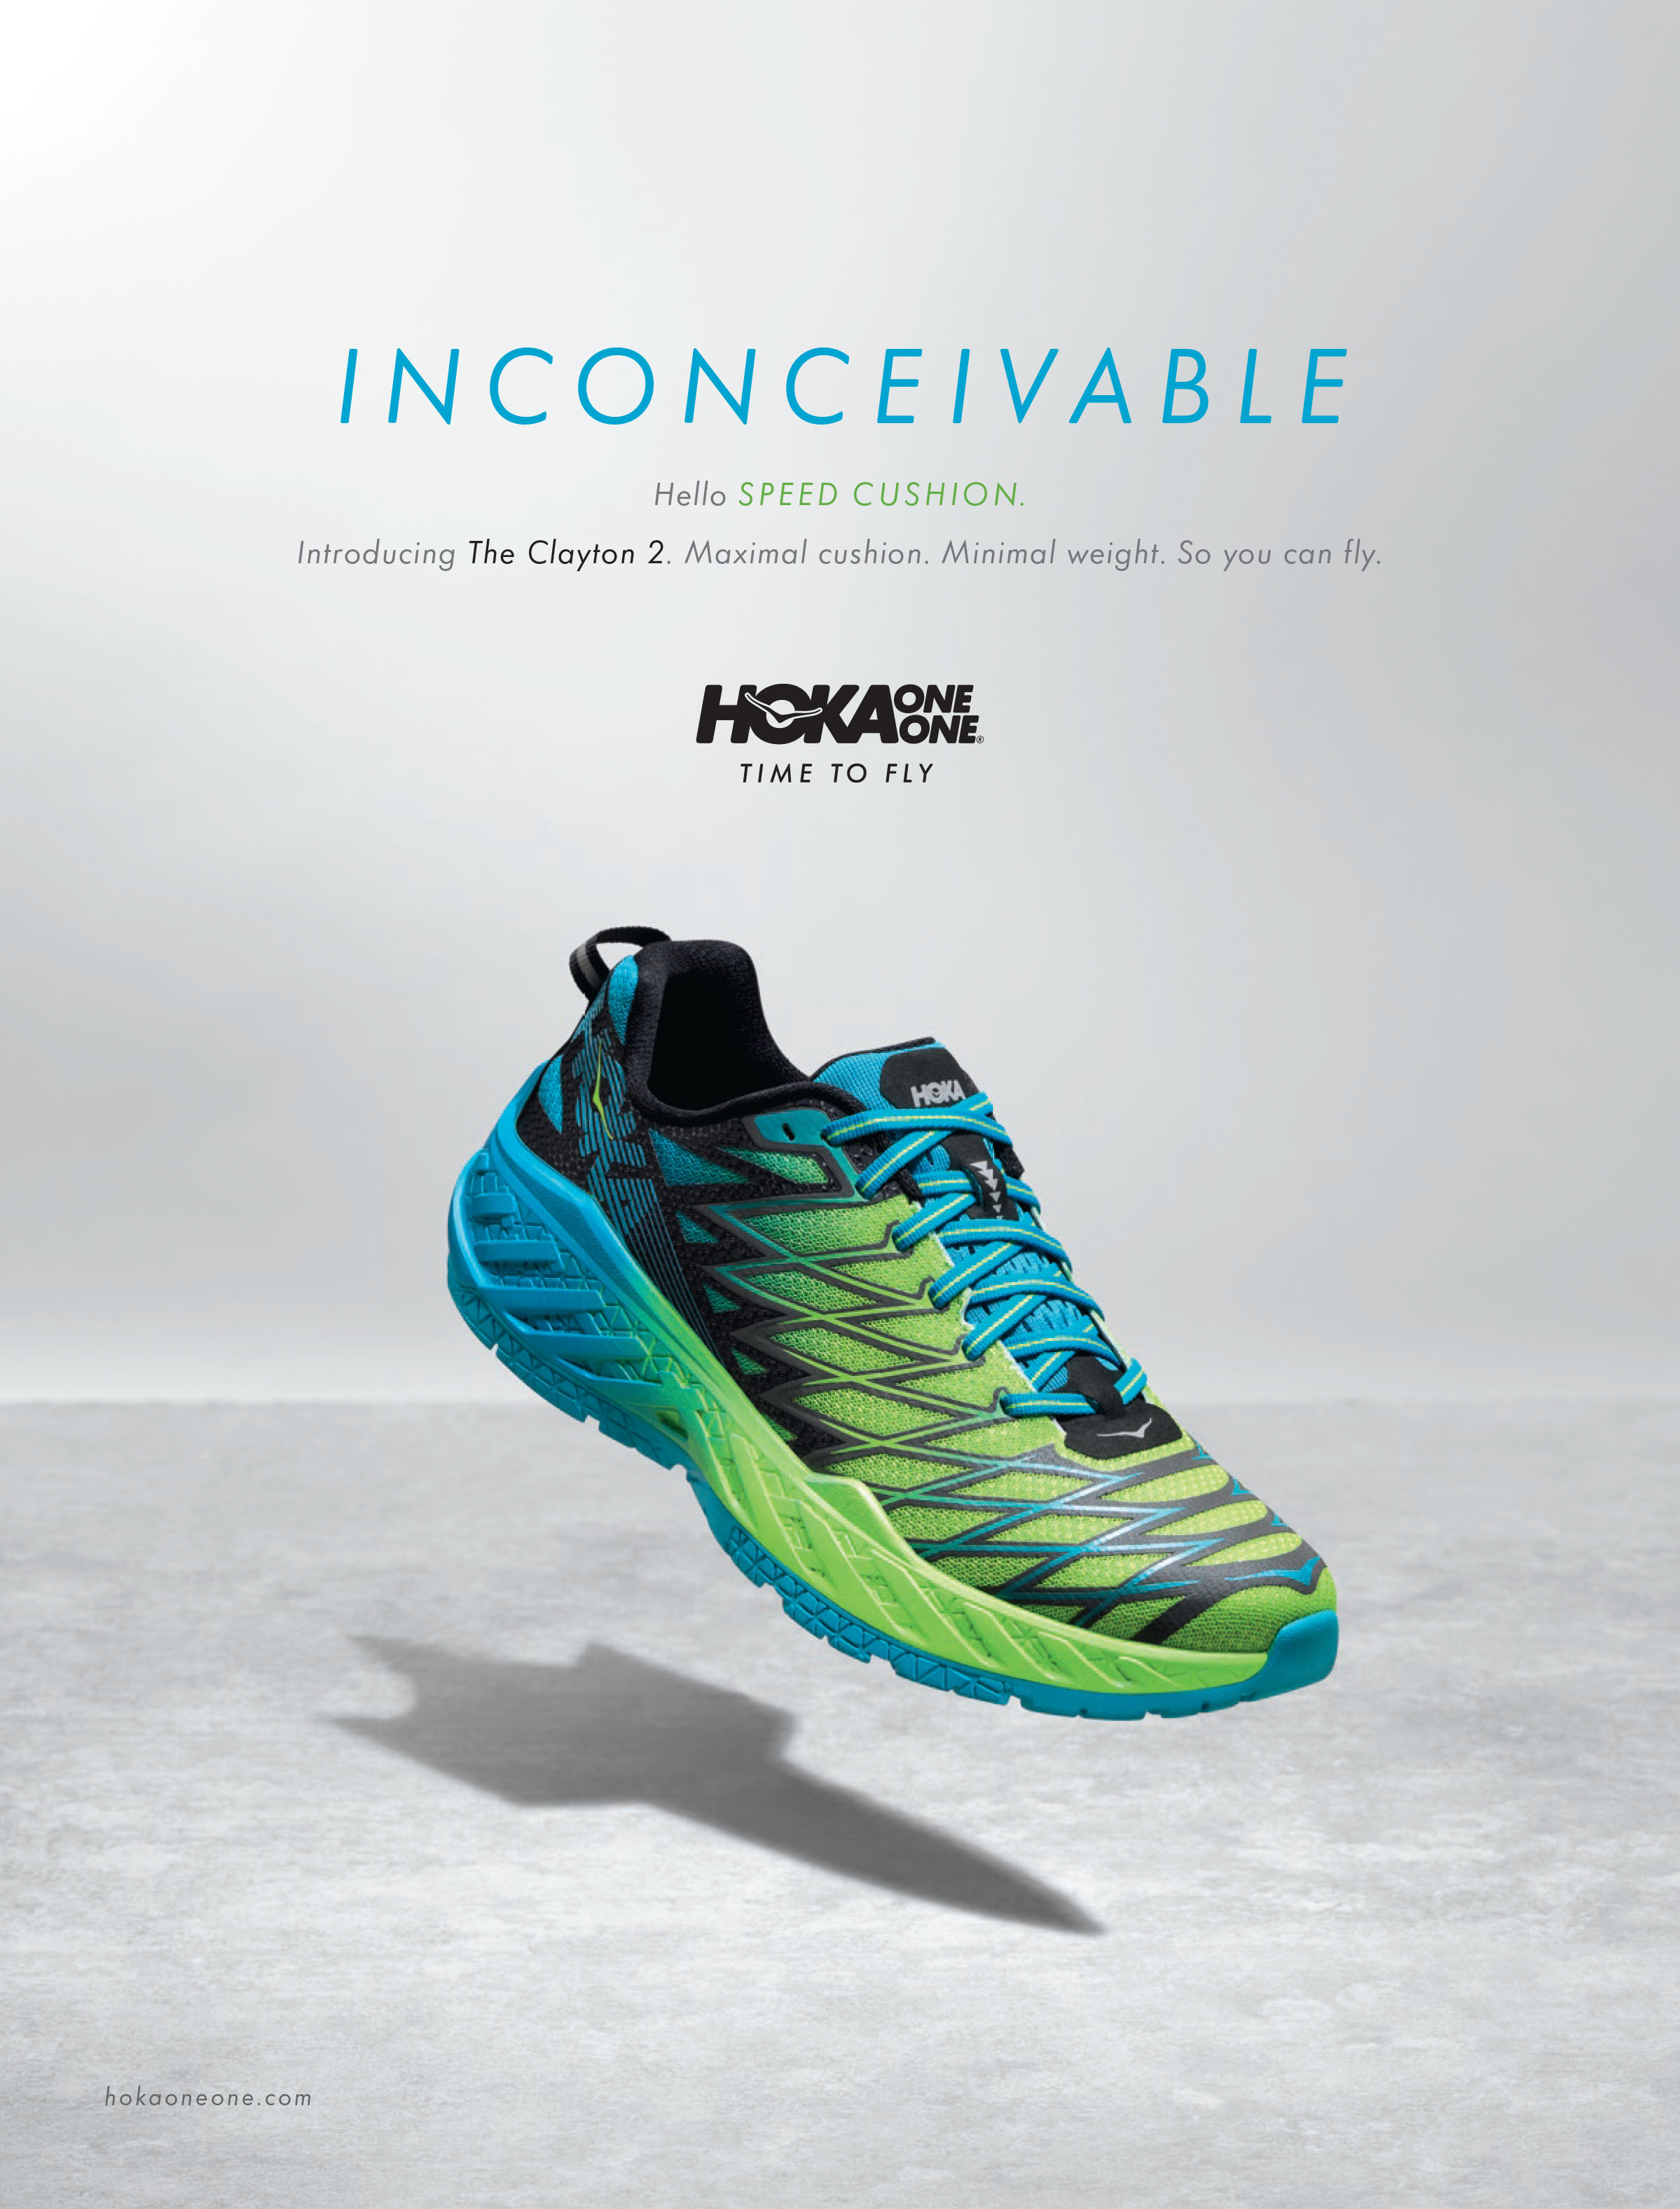 inconceivable clayton 2 hoka one one running shoe green